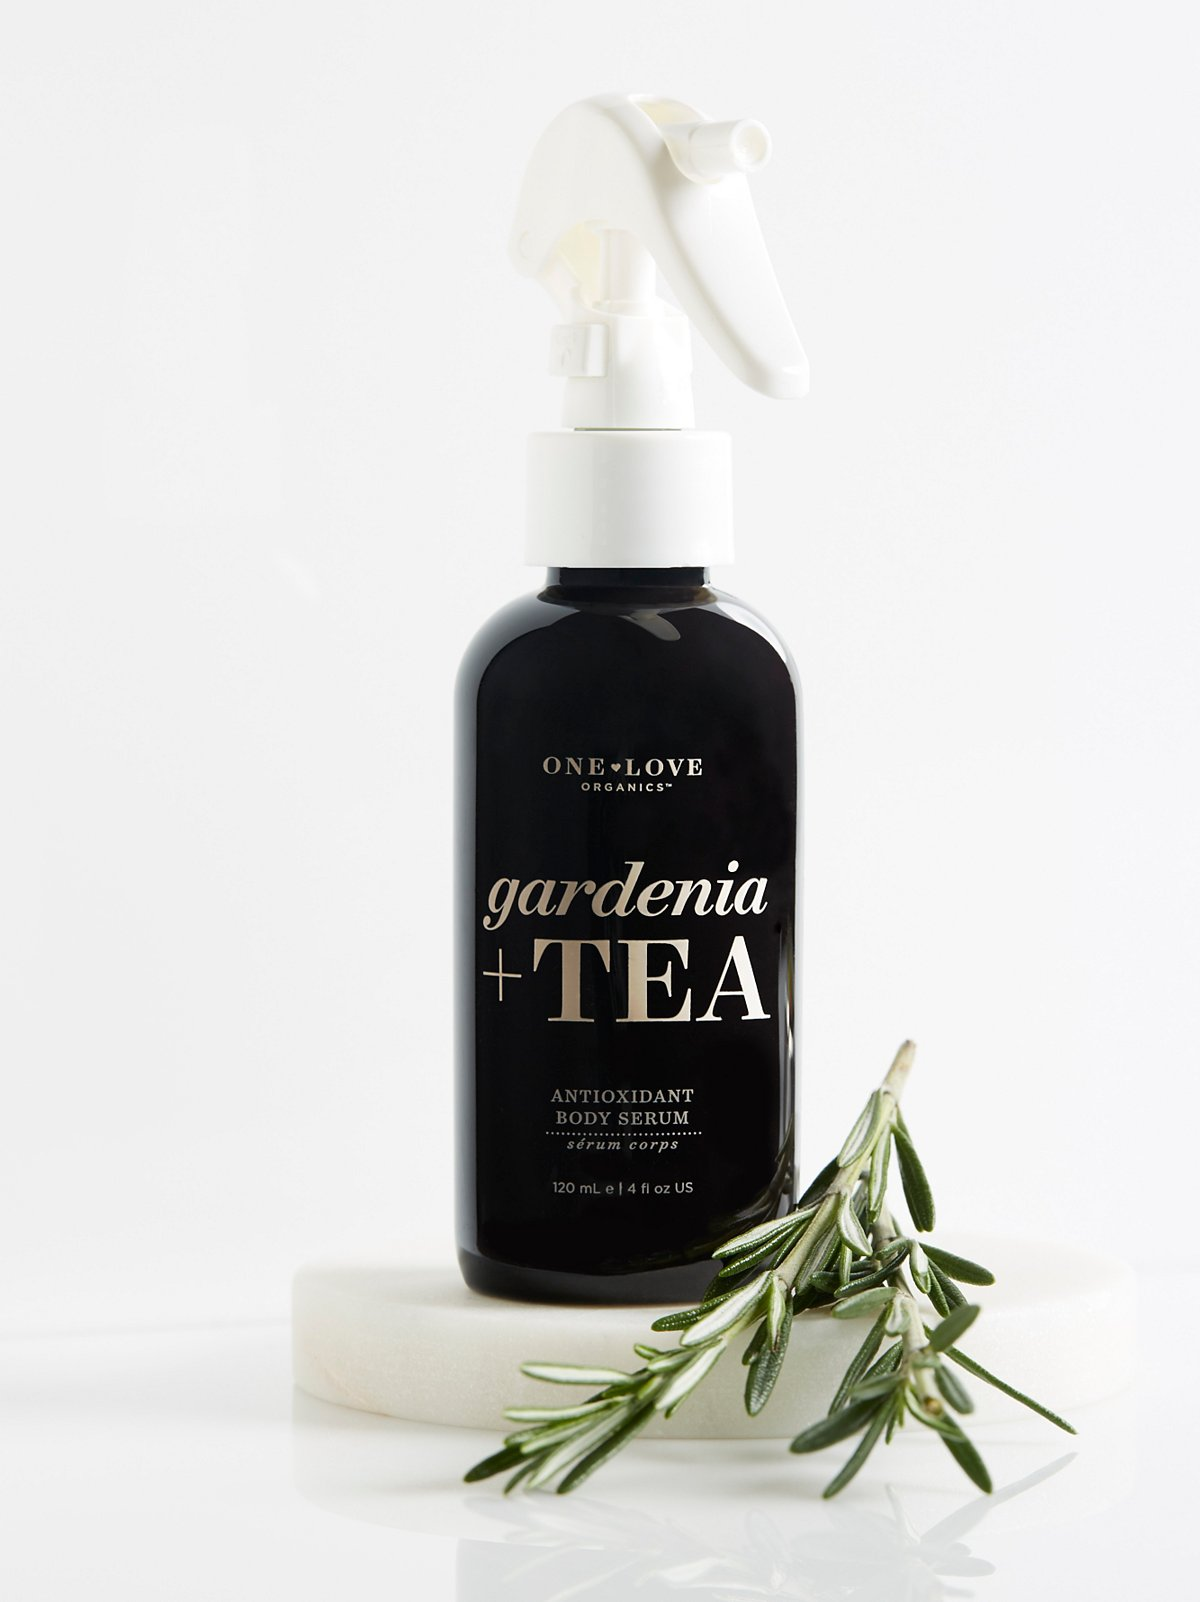 Gardenia & Tea Antioxidant Body Serum